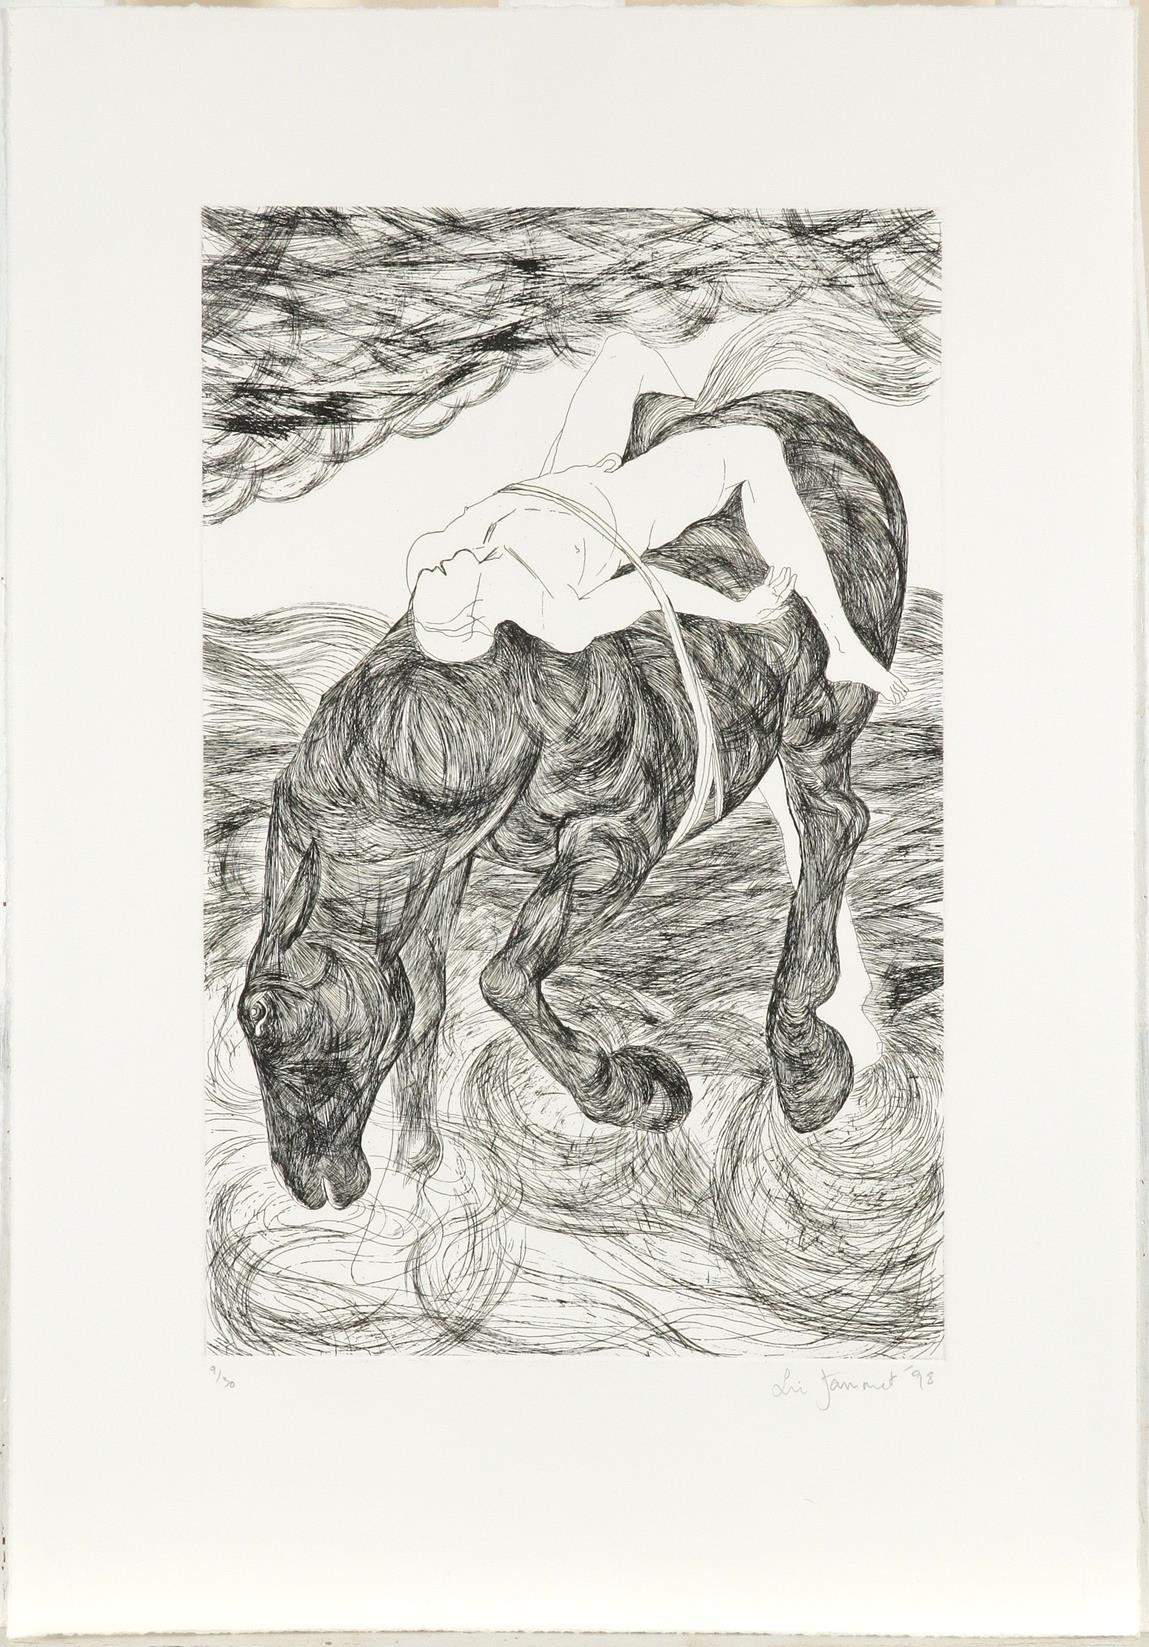 ‡Lin Jammet (1958-2017) Mazeppa Signed, dated and numbered 9/30 Lin Jammet '98 (in pencil to - Image 2 of 3